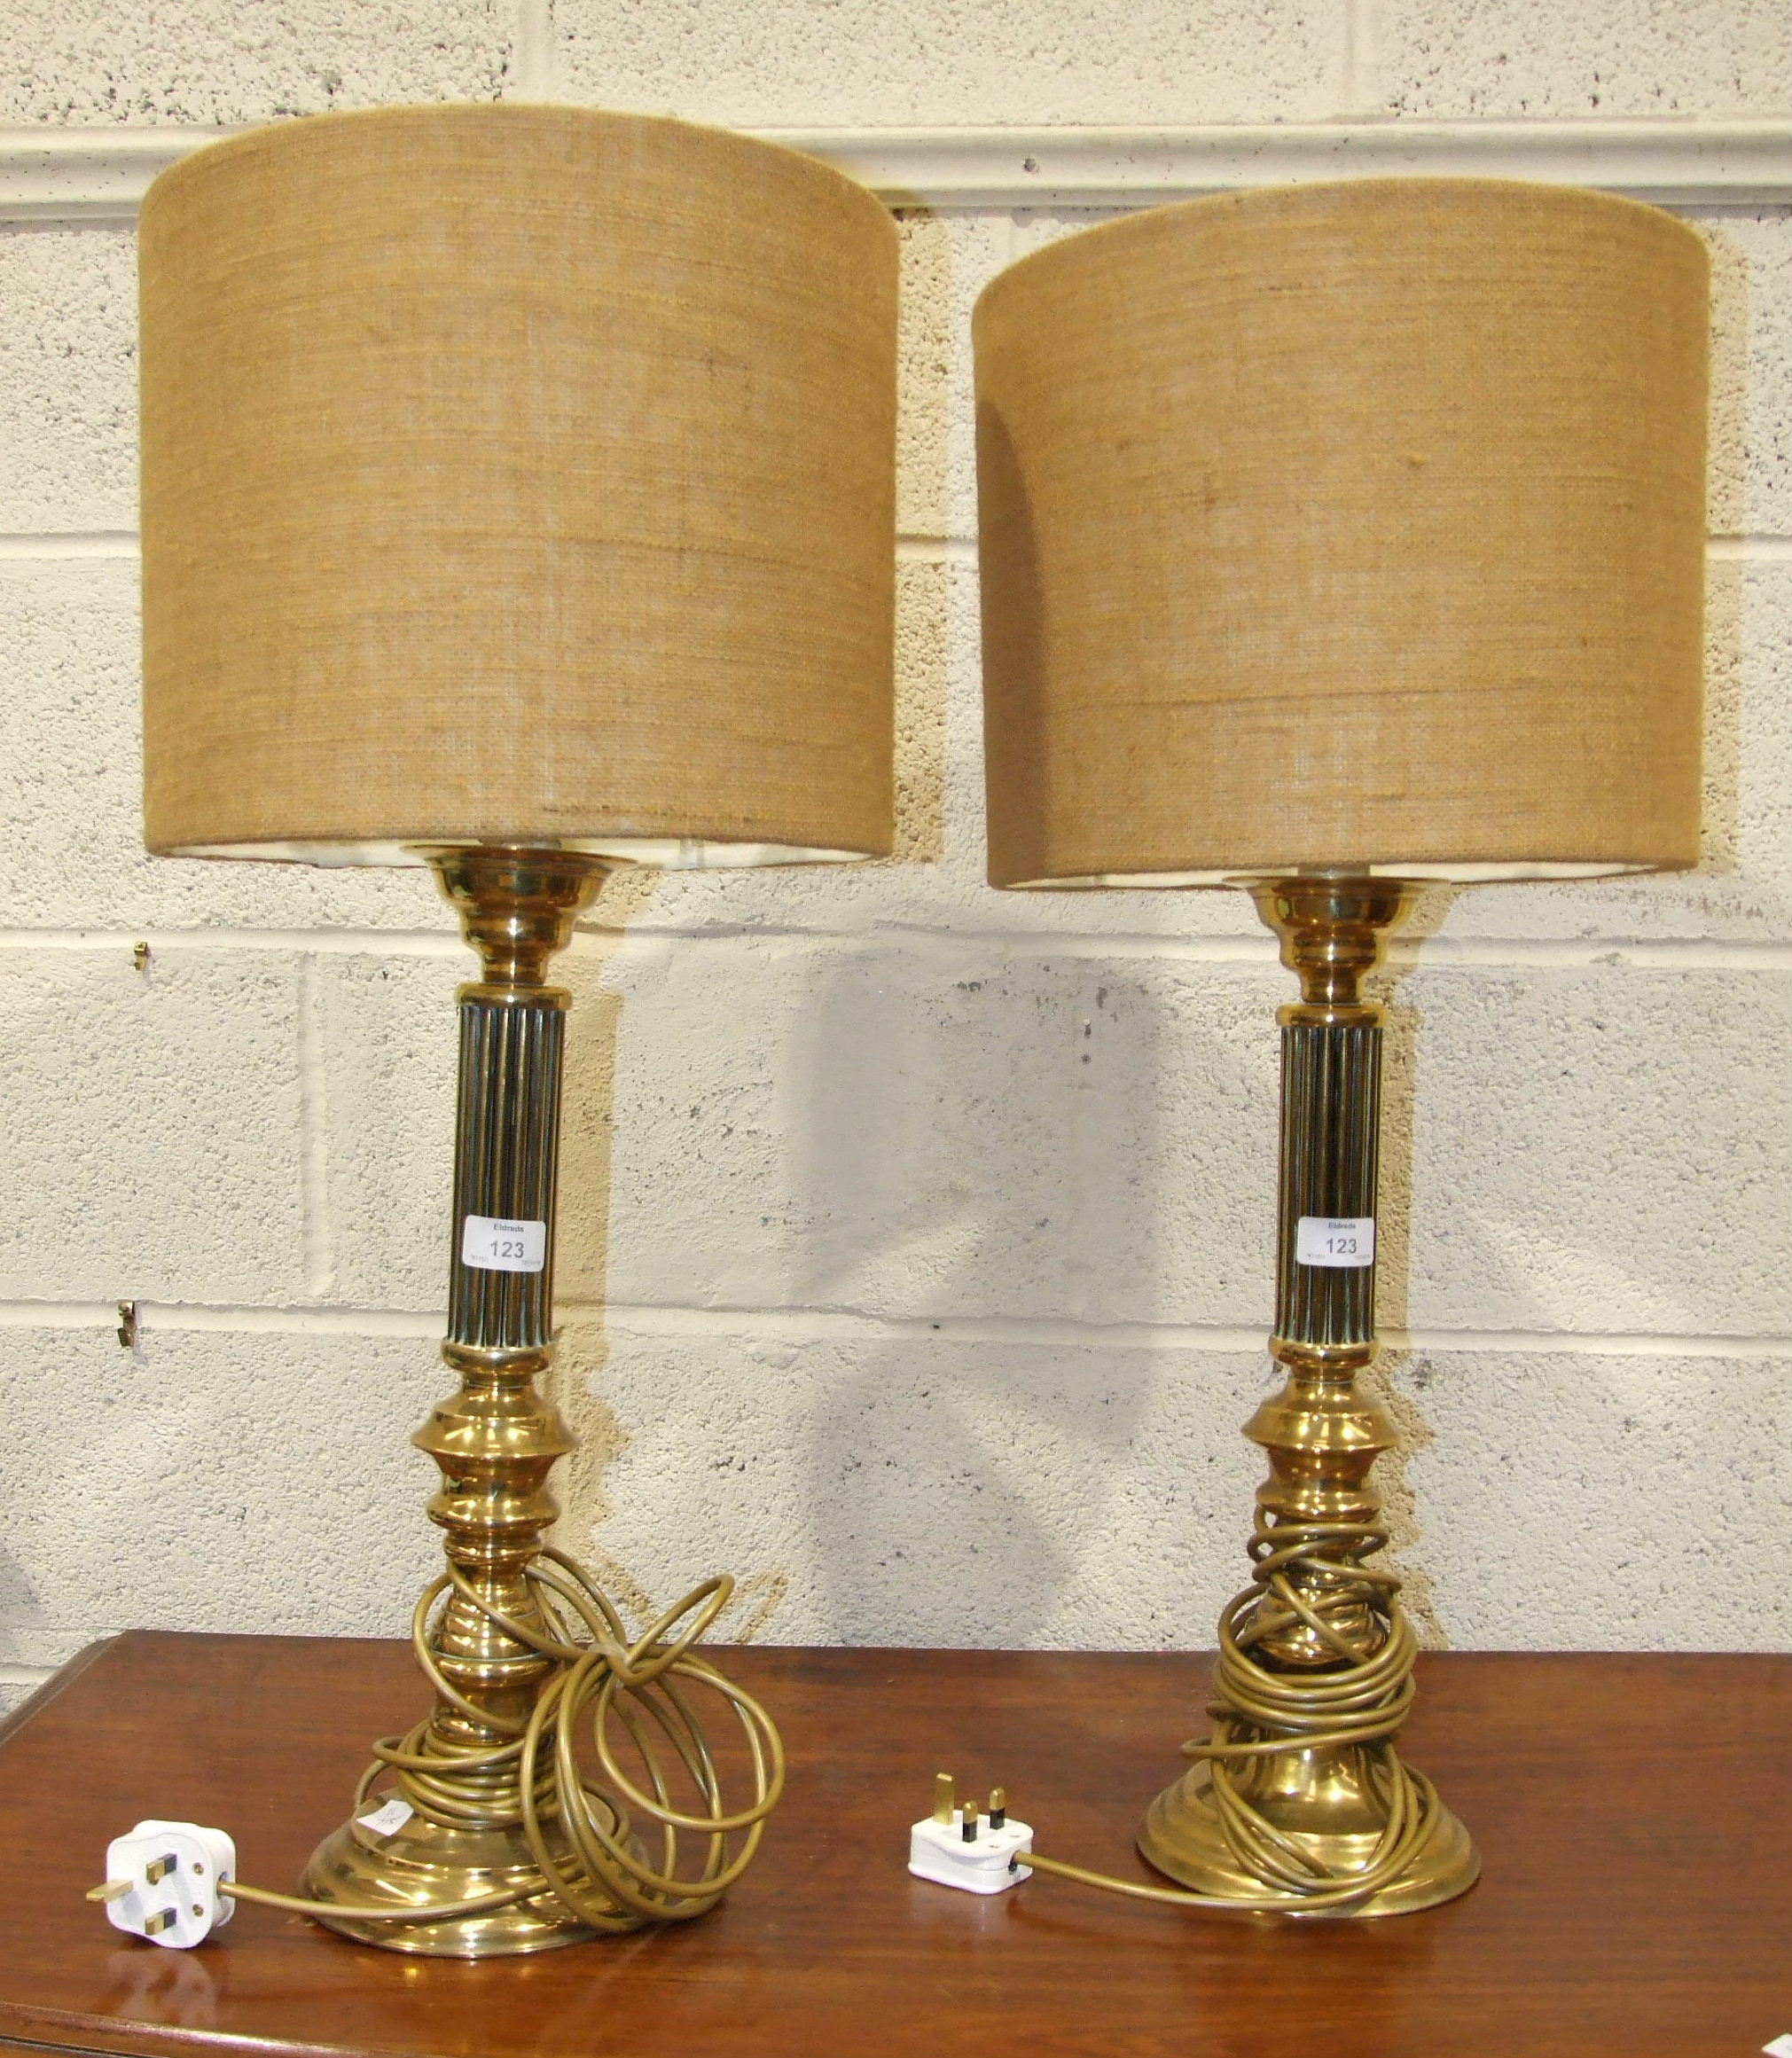 Lot 123 - A pair of brass table lamps with reeded and turned columns, on circular bases, 51cm high, (2).